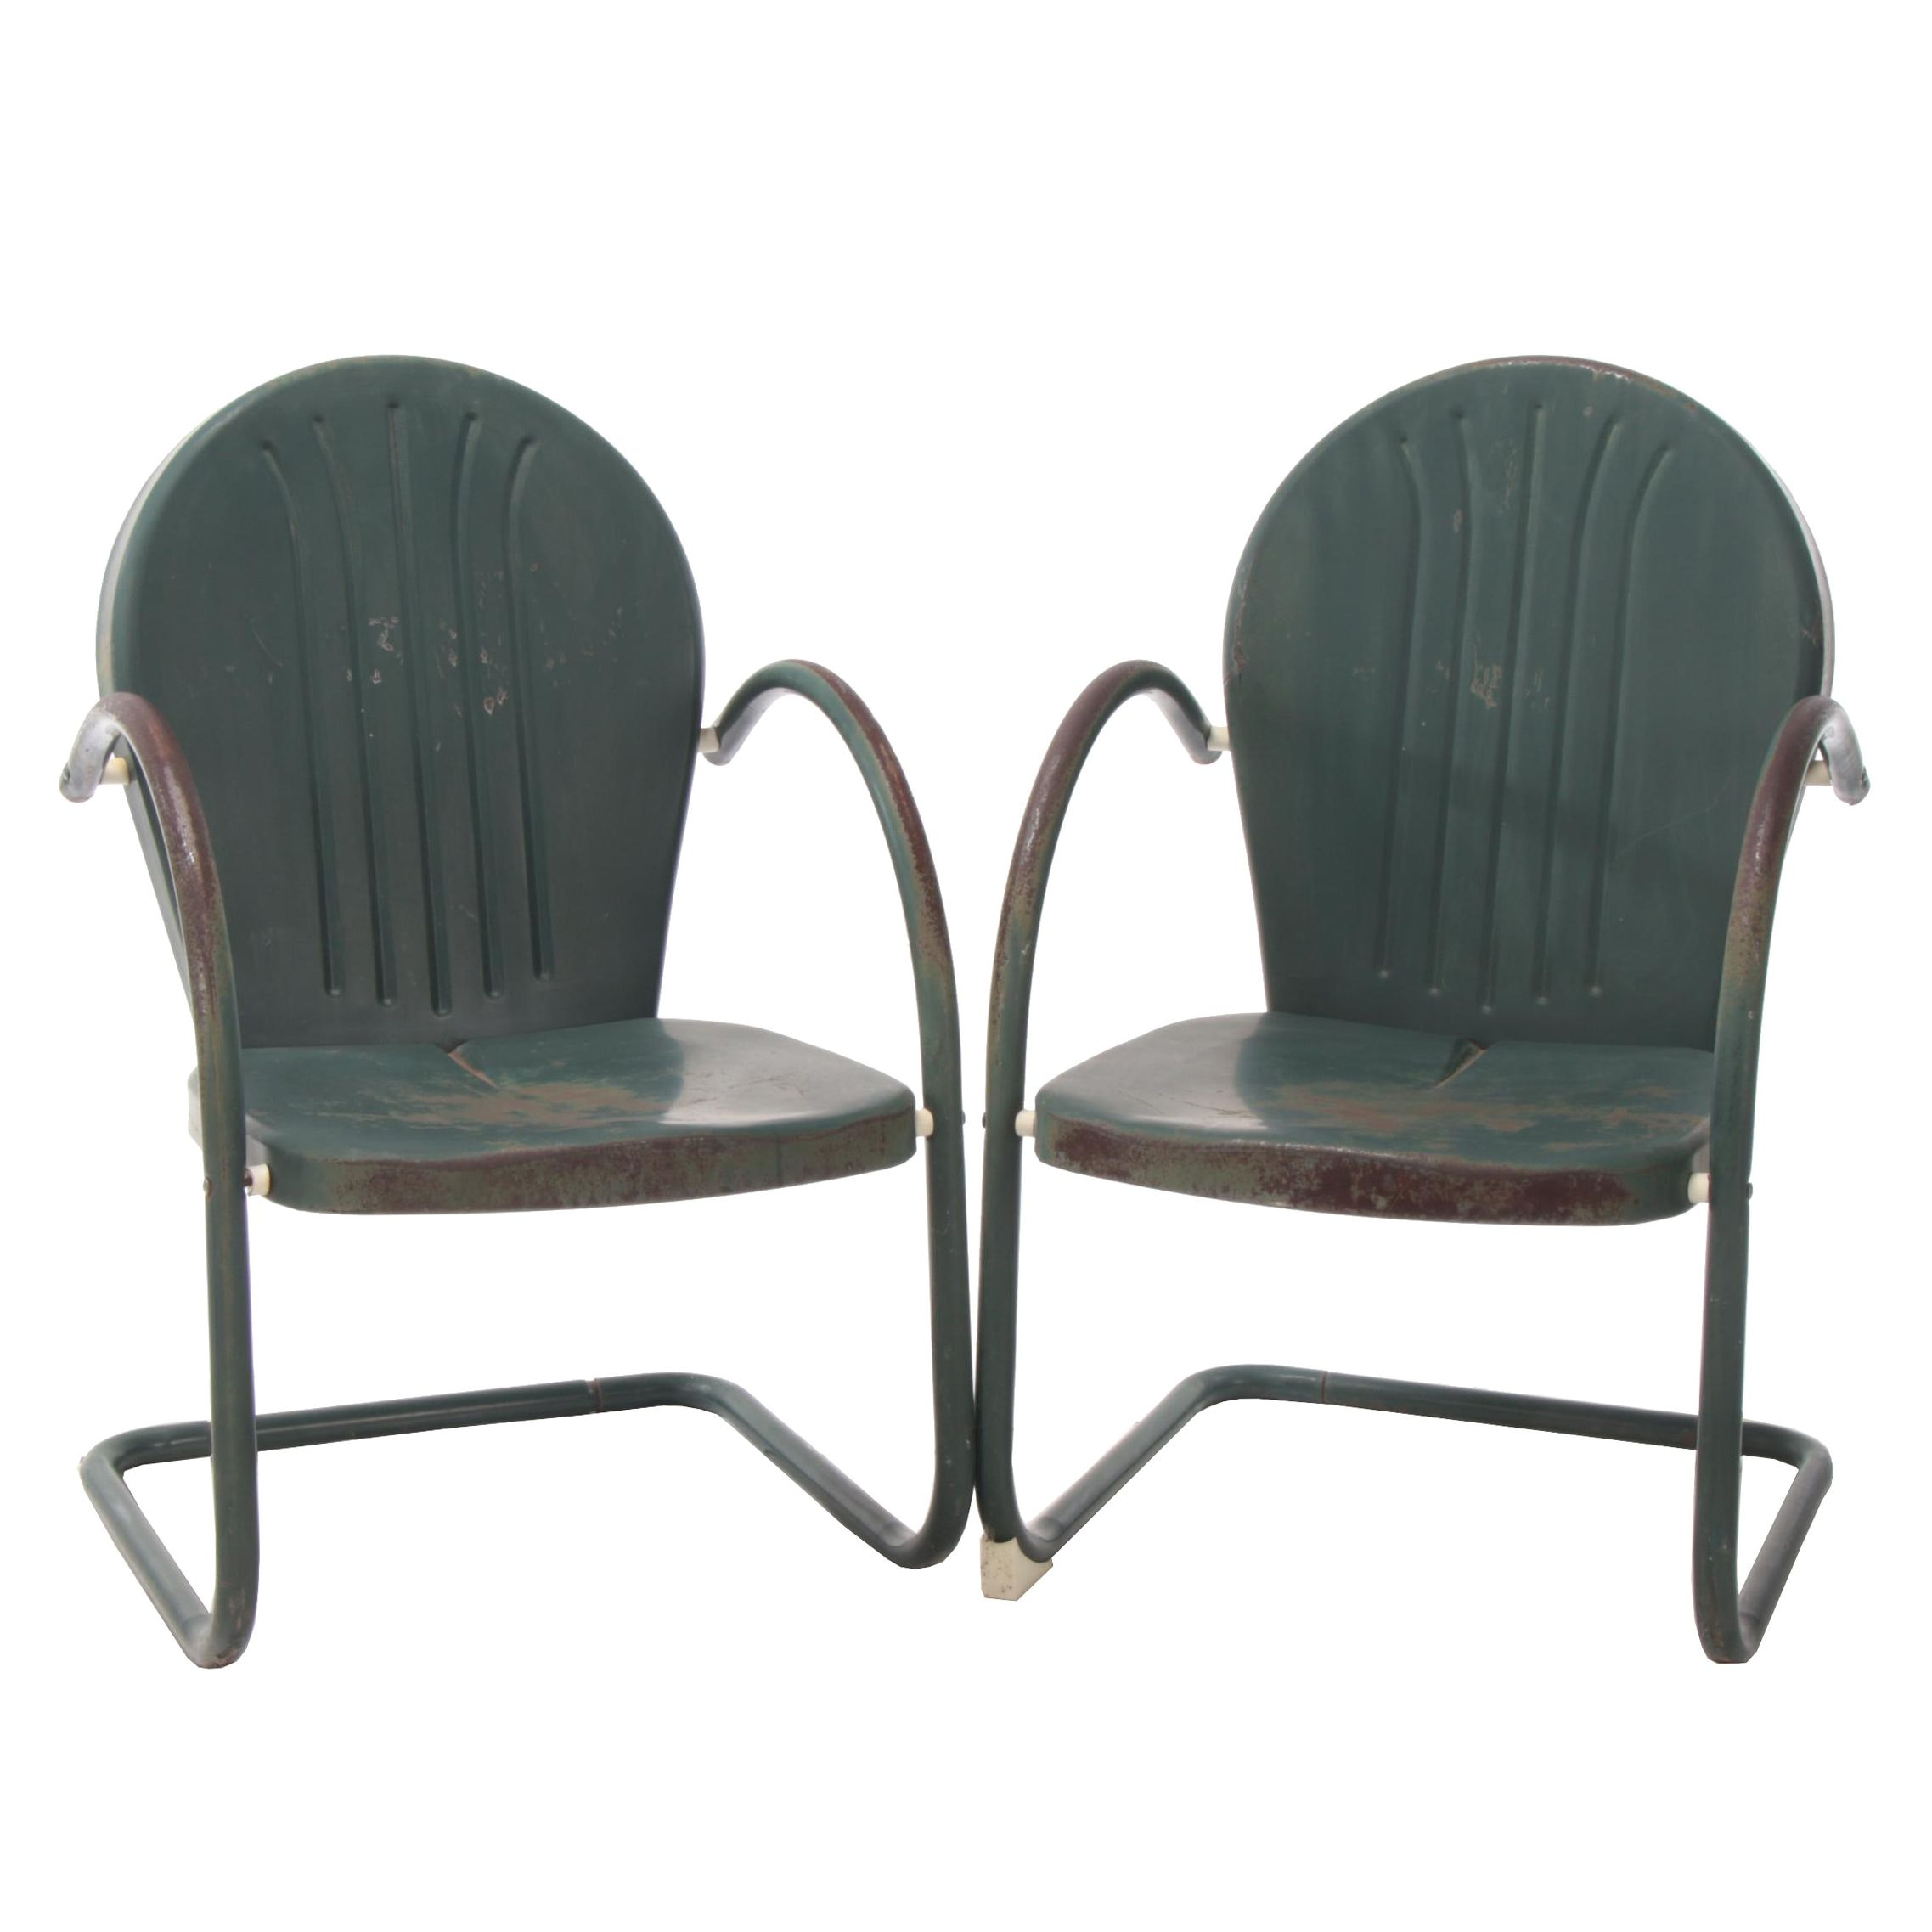 Painted Metal Patio Chairs, Mid to Late 20th Century